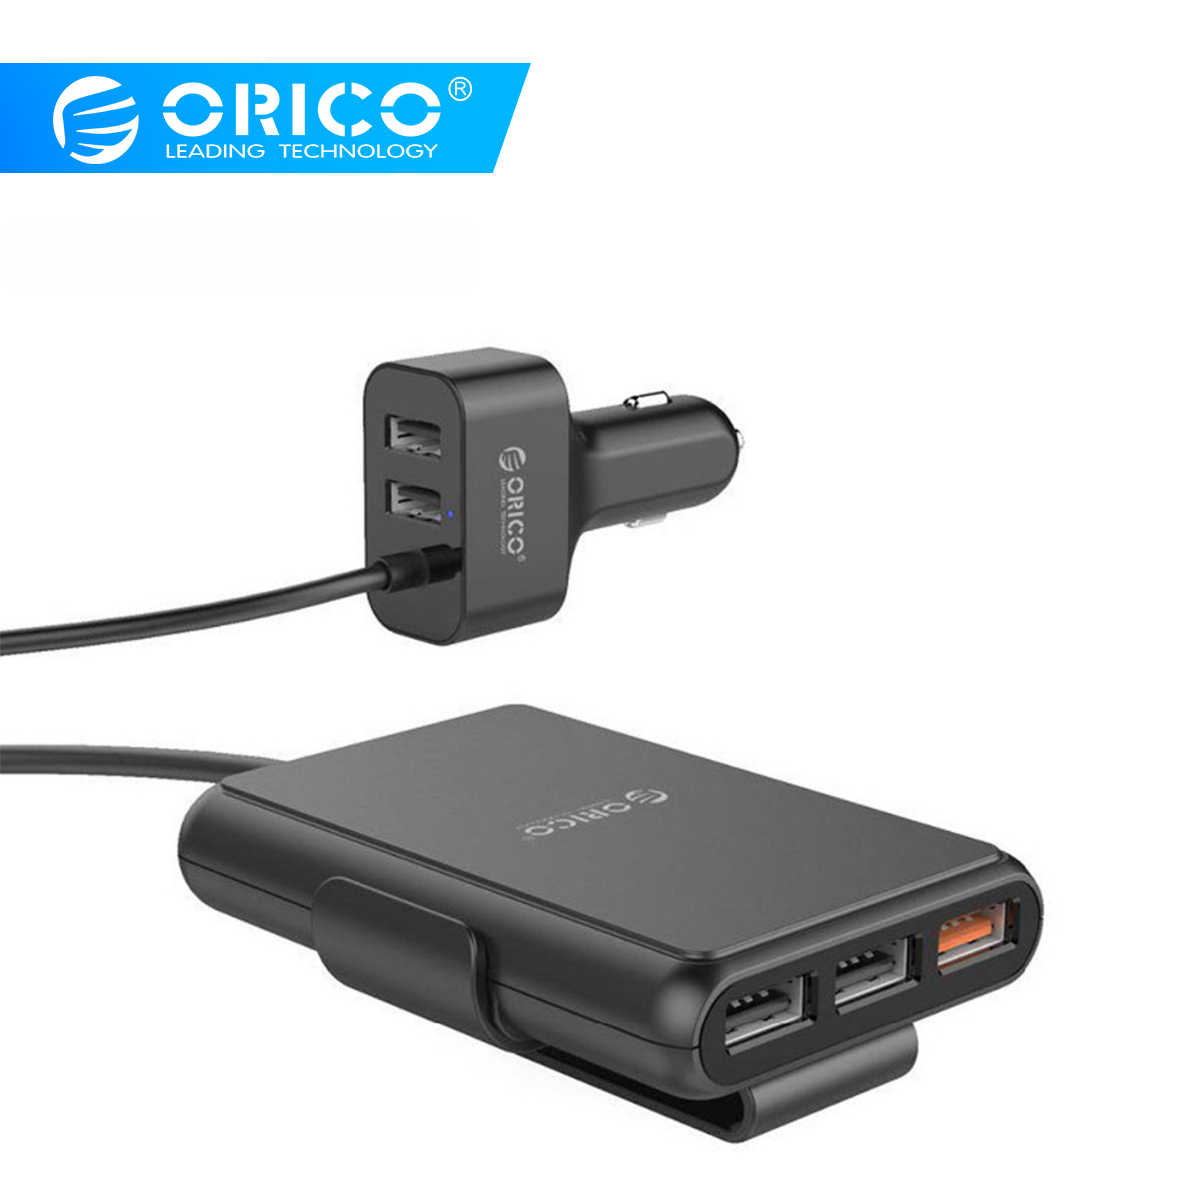 ORICO 5 Port QC3.0 USB Car Charger Universal USB Charger Adapter 52W For MPV Car Mobile Phones Tablet PC 12V-24V